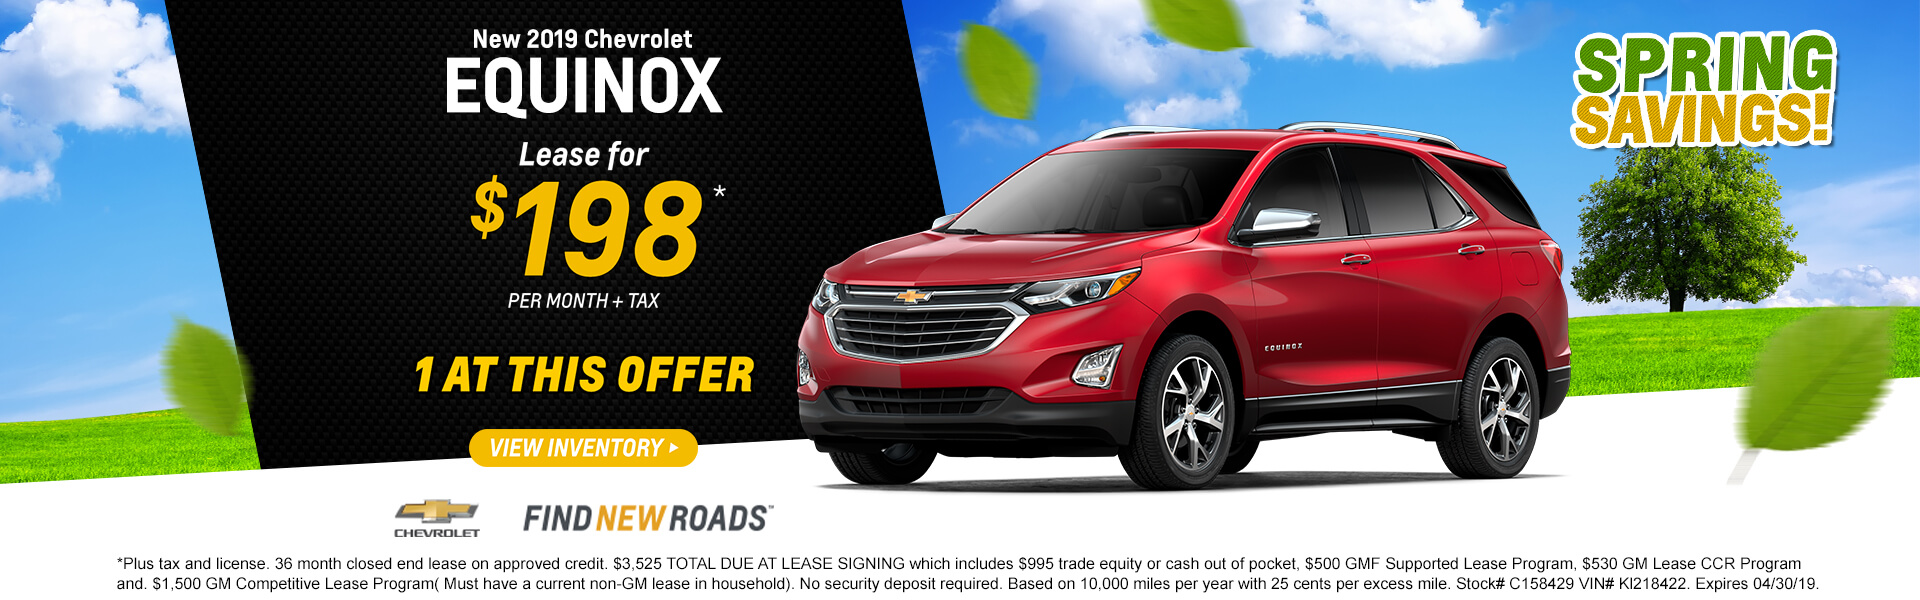 2019 Equinox LS Lease $198 per month $3,525 TOTAL DUE AT LEASE SIGNING which includes $995 trade equity or cash out of pocket, $500 GMF Supported Lease Program, $530 GM Lease CCR Program and. $1,500 GM Competitive Lease Program( Must have a current non-GM lease in household). No security deposit required. Based on 10,000 miles per year with 25 cents per excess mile. Stock# C158429 VIN# Kl218422. Expires 04/30/19.